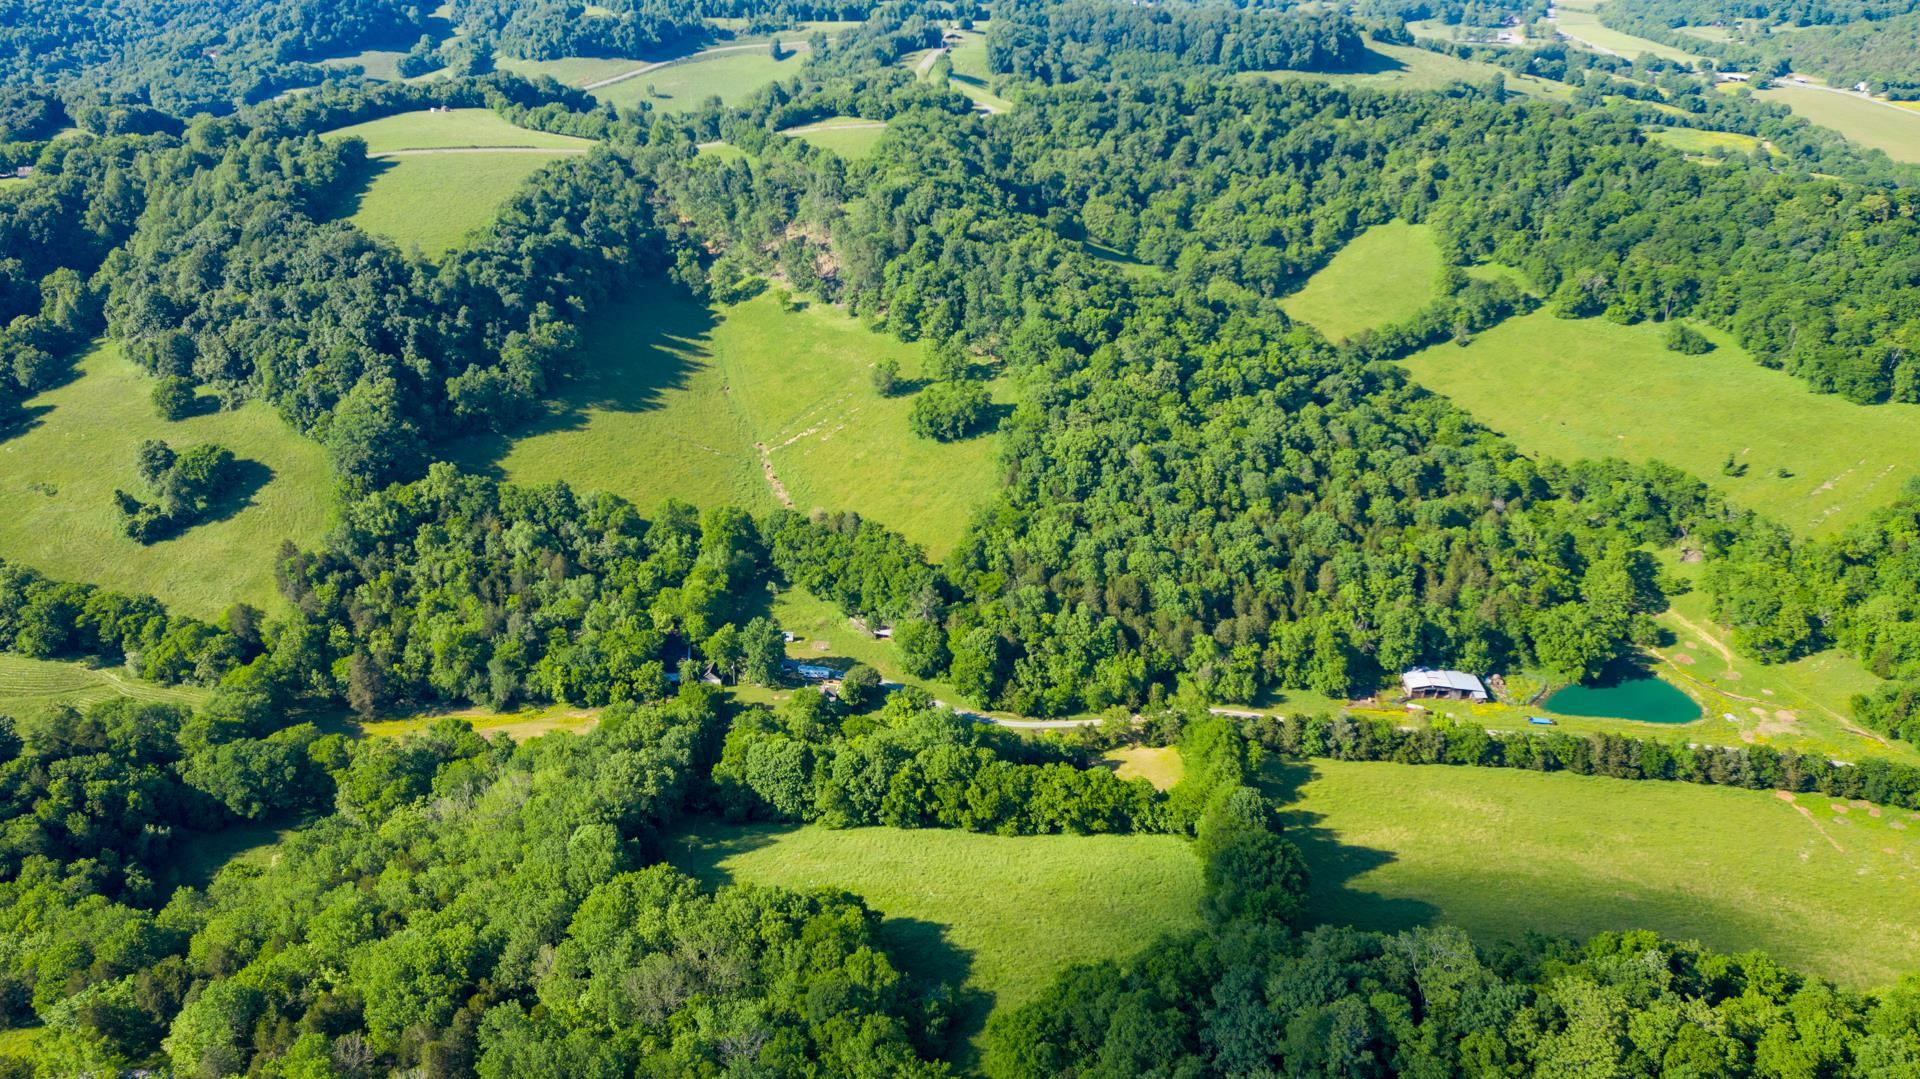 59 Giles Hollow Rd, Fayetteville, TN 37334 - Fayetteville, TN real estate listing